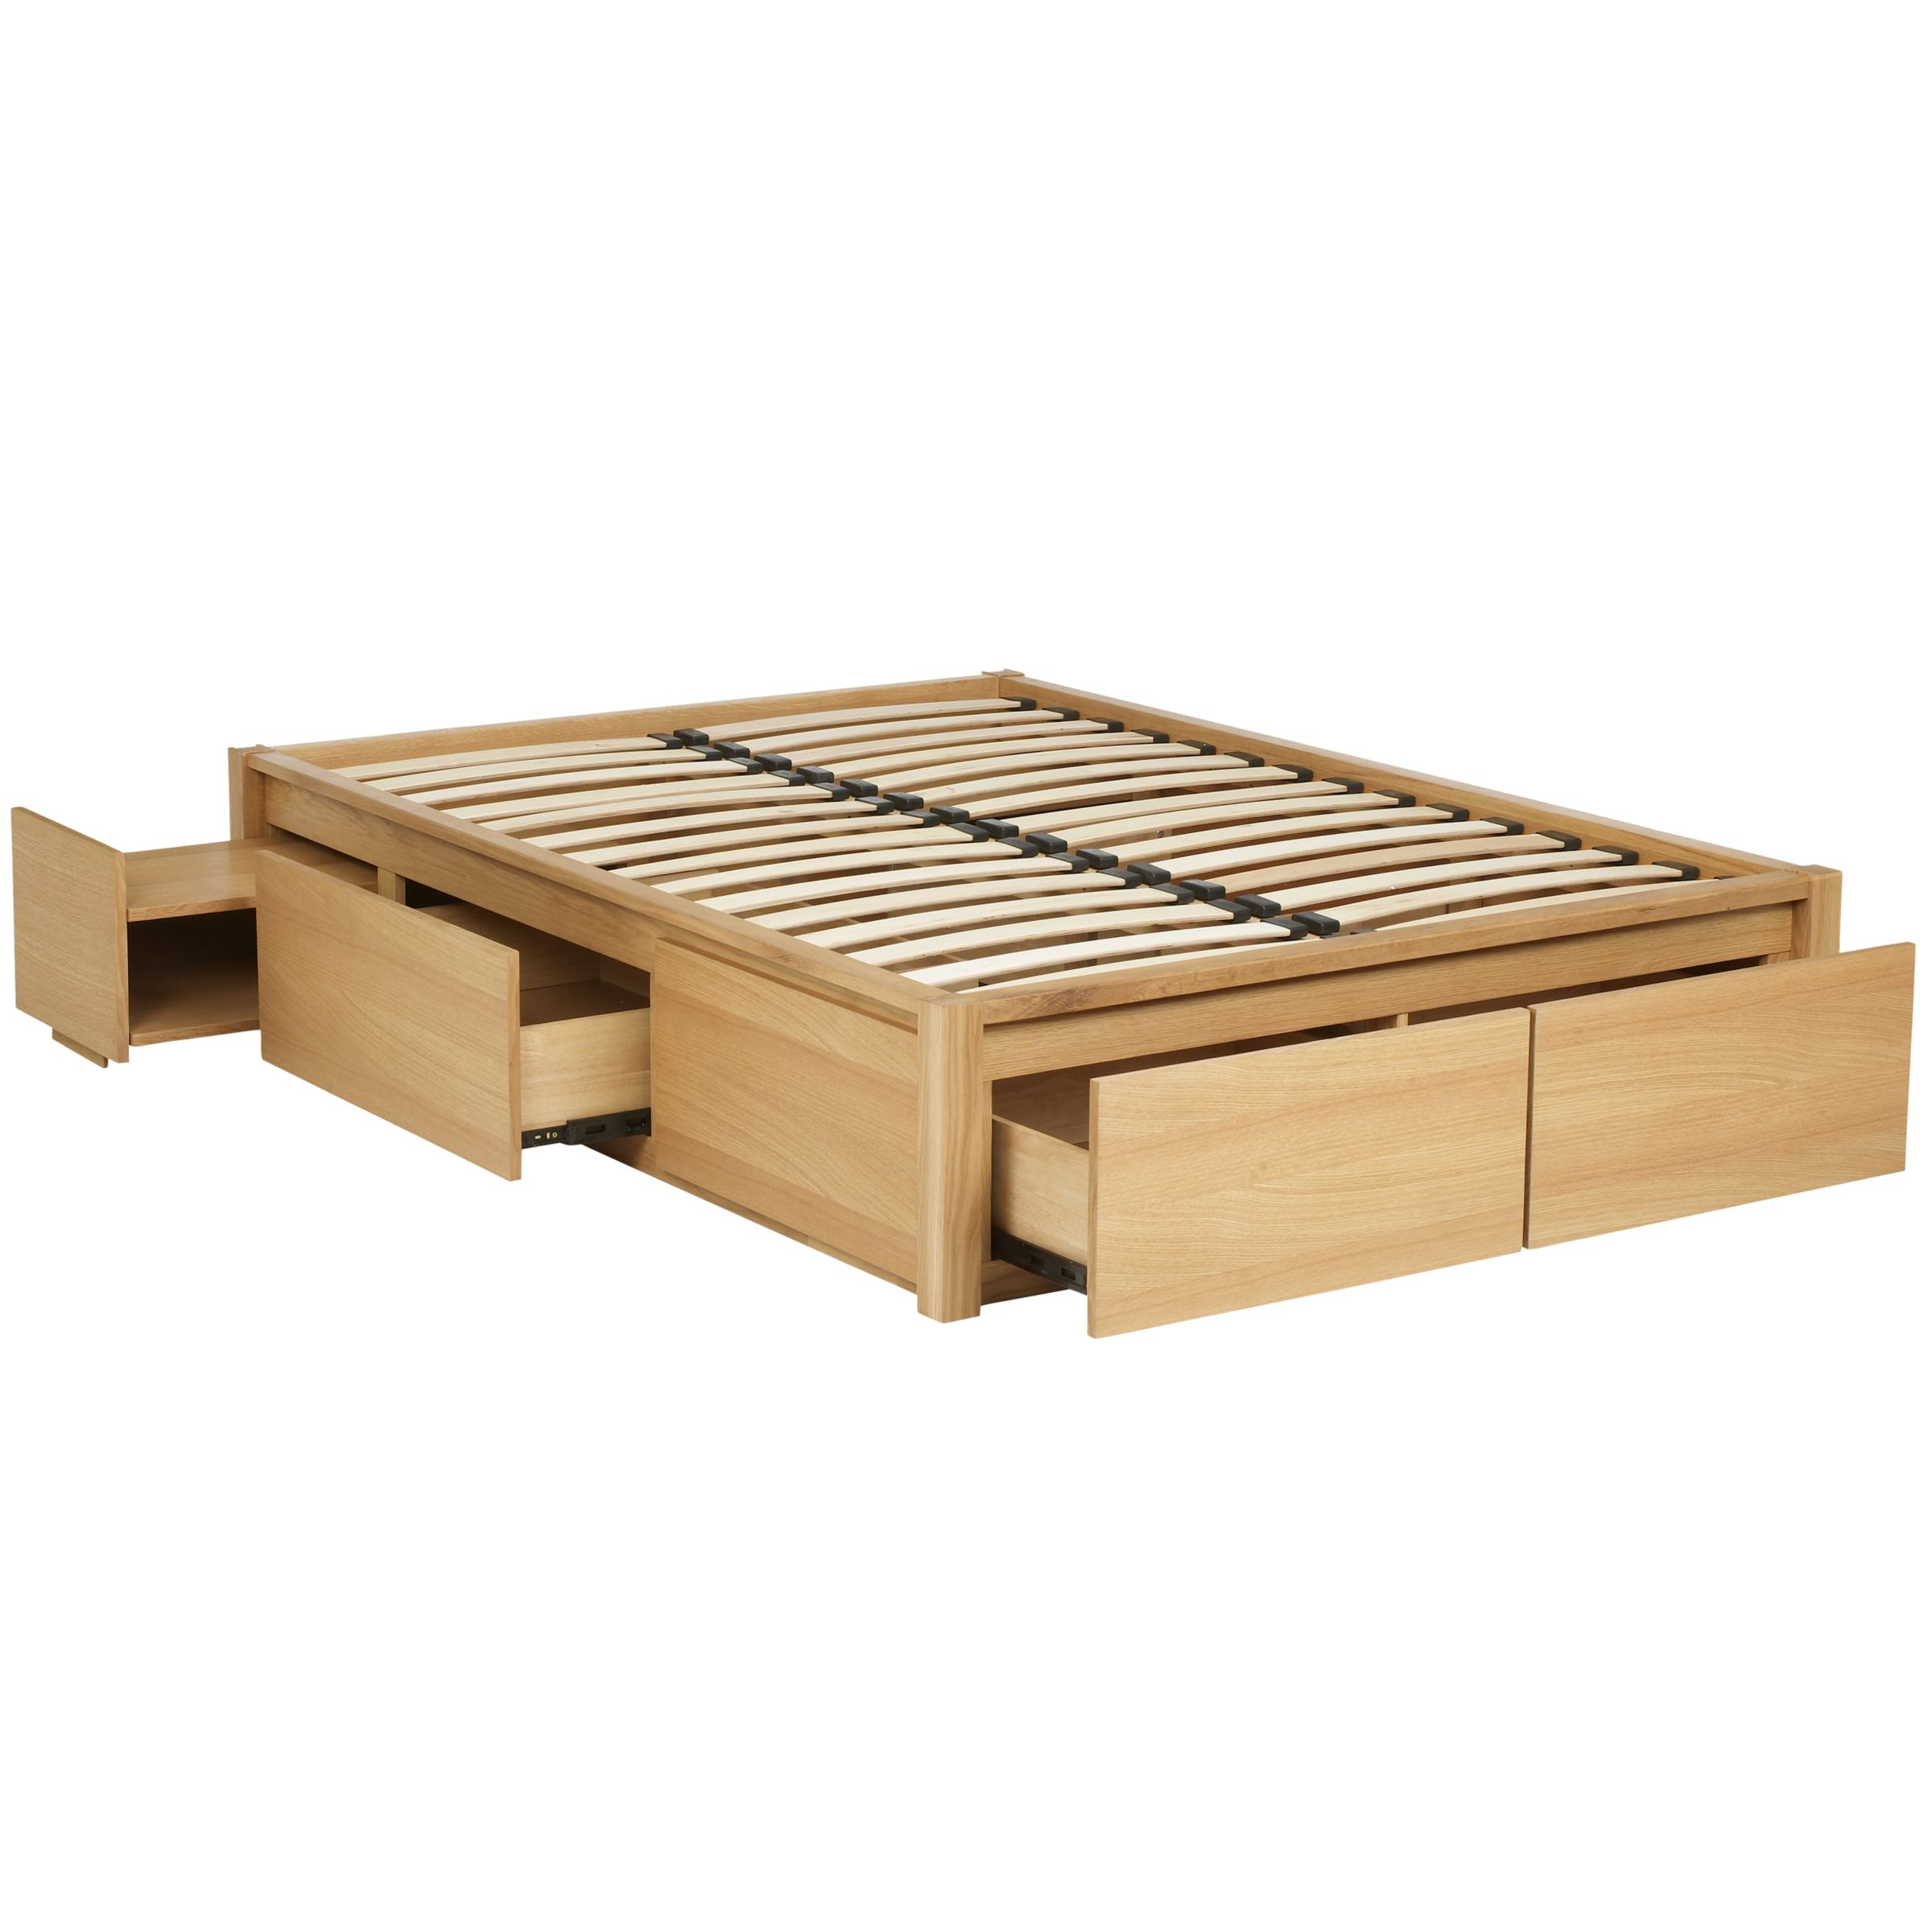 Platform Bed with Storage Drawers Plans